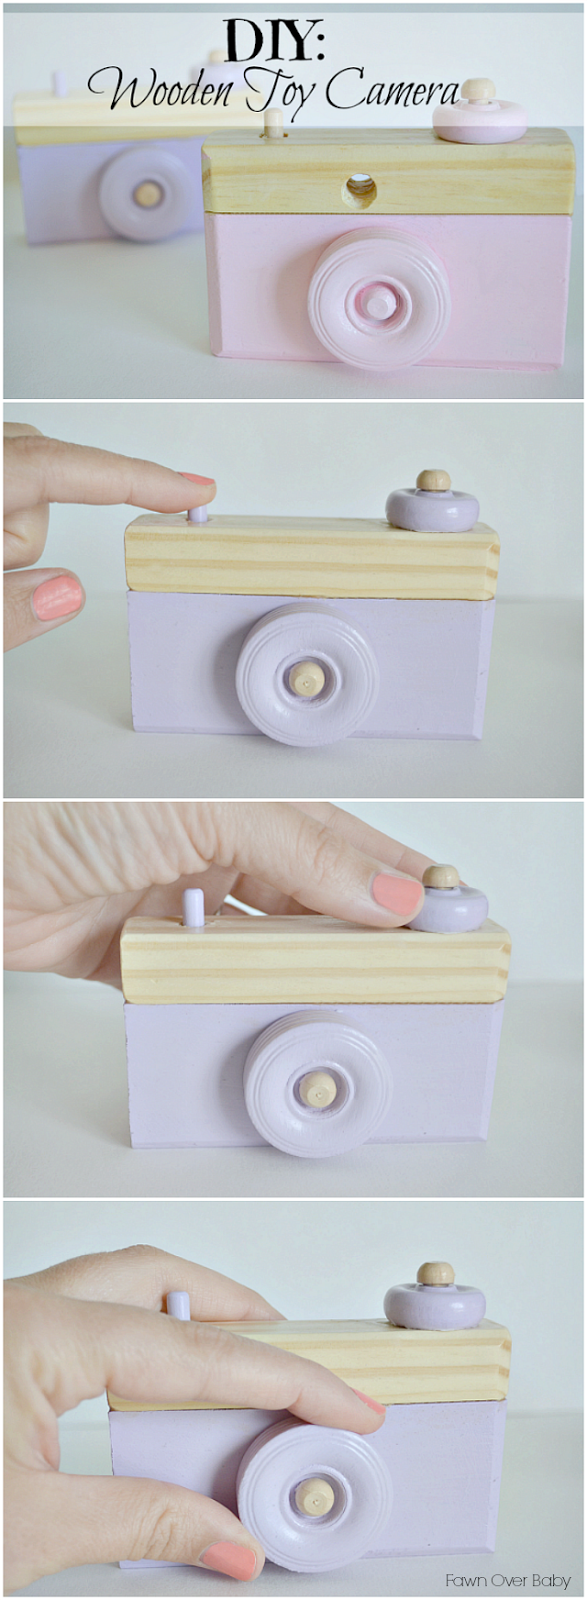 Fawn Over BabyDIY Wooden Toy Camera + Giveaway!